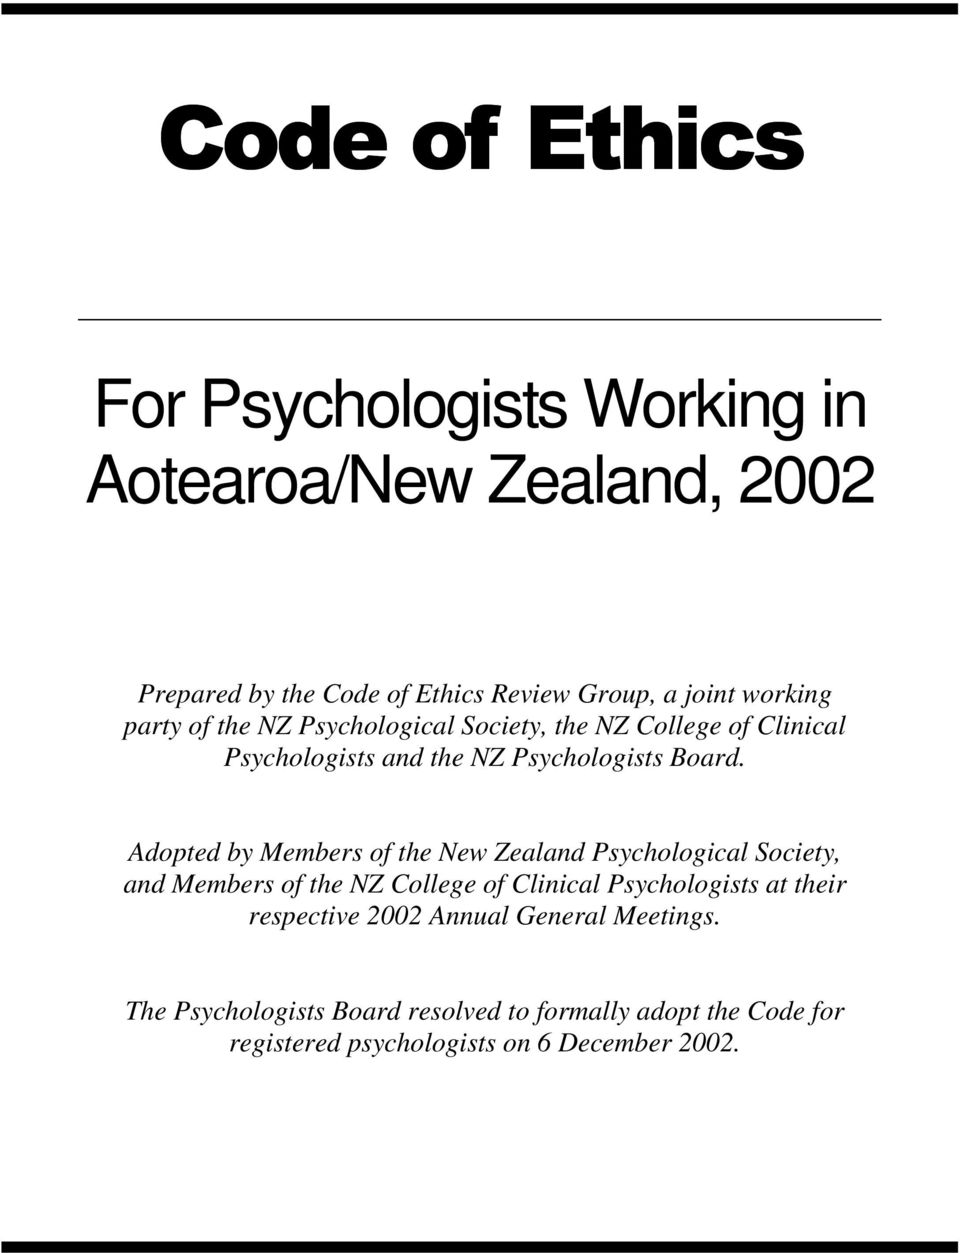 Adopted by Members of the New Zealand Psychological Society, and Members of the NZ College of Clinical Psychologists at their